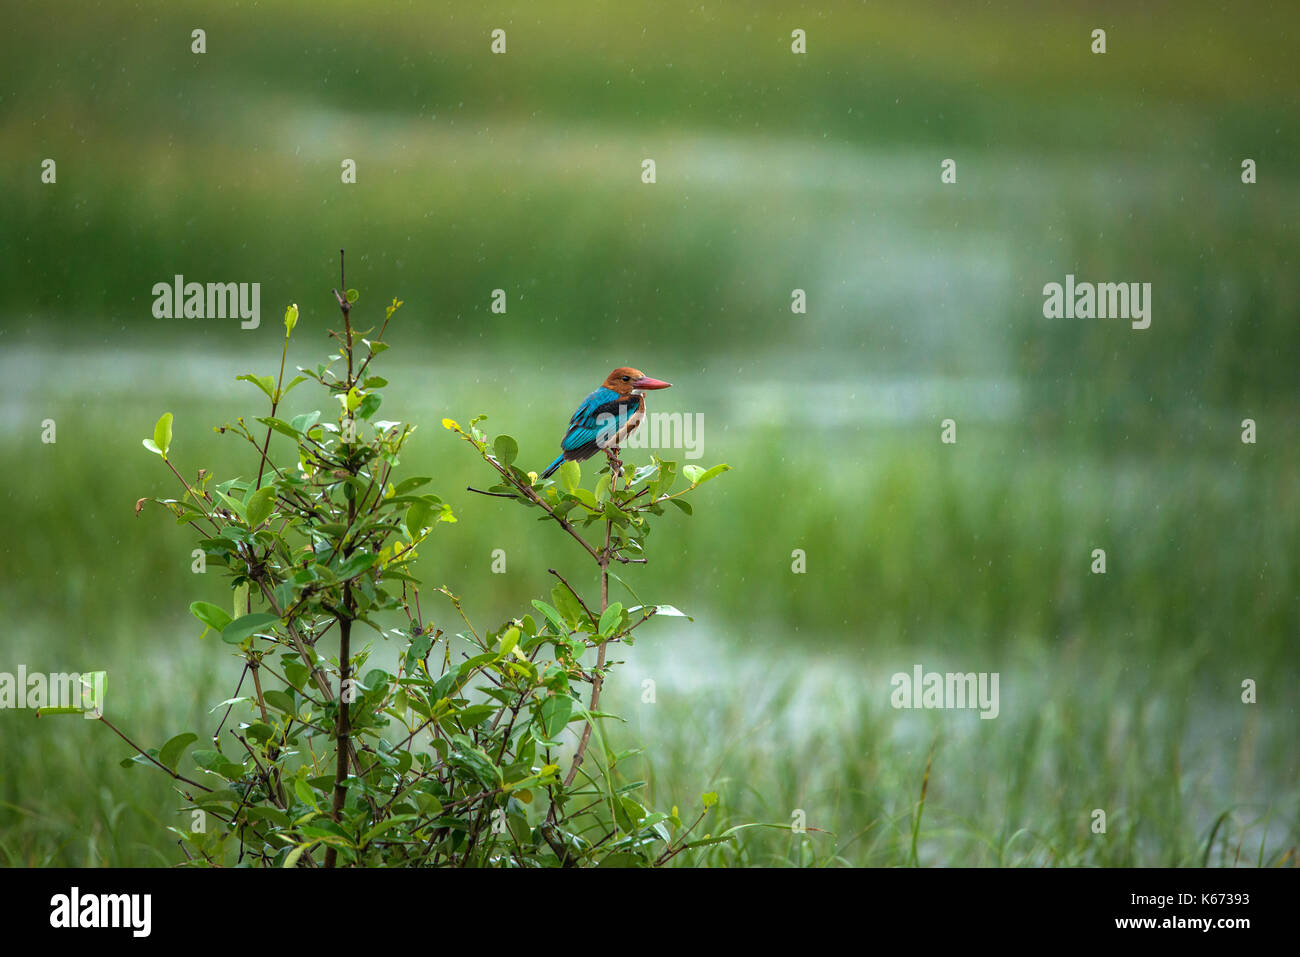 A white Throated kingfisher bird perched on a plant in a paddy field during rain - Stock Image